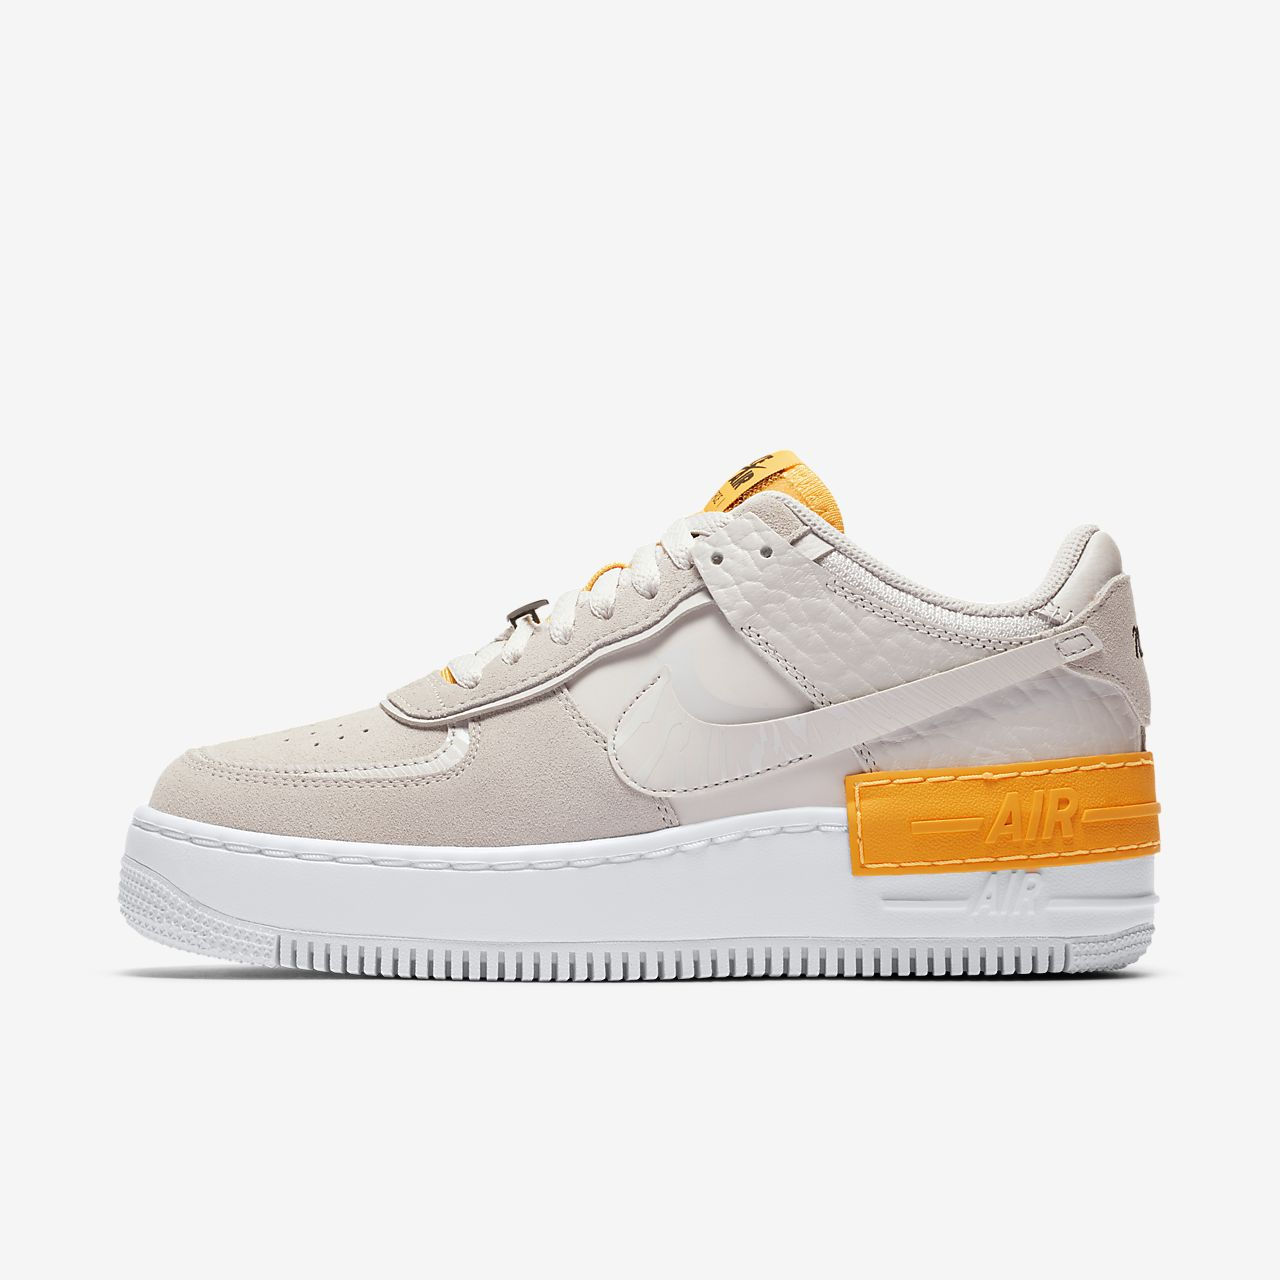 air force one nike femme belgique